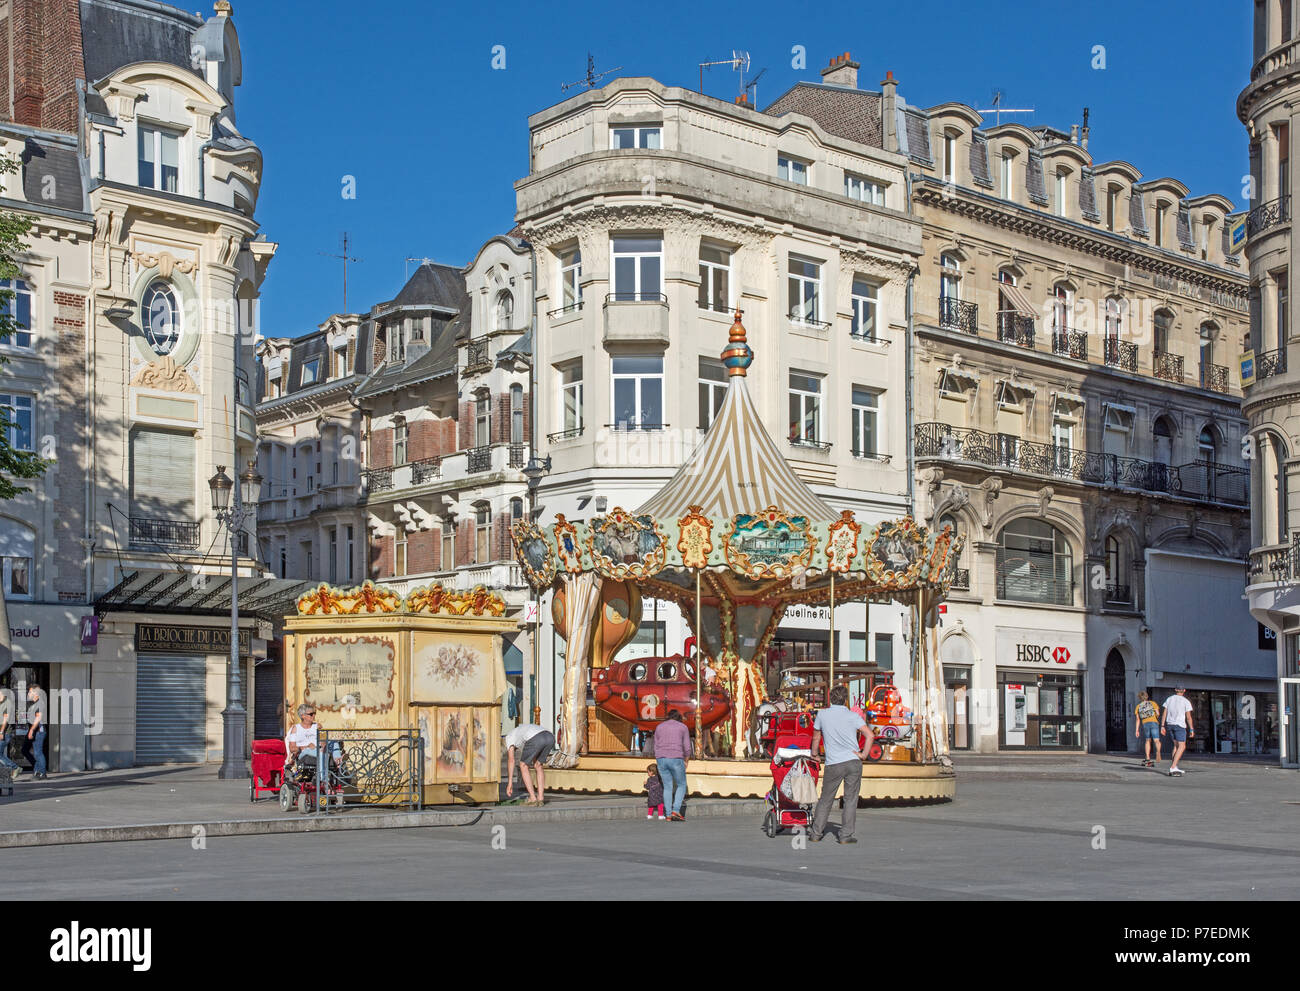 Charming old fashioned traditional carousel children's roundabout in Place de l'Hotel de Ville St Quentin Aisne France Stock Photo